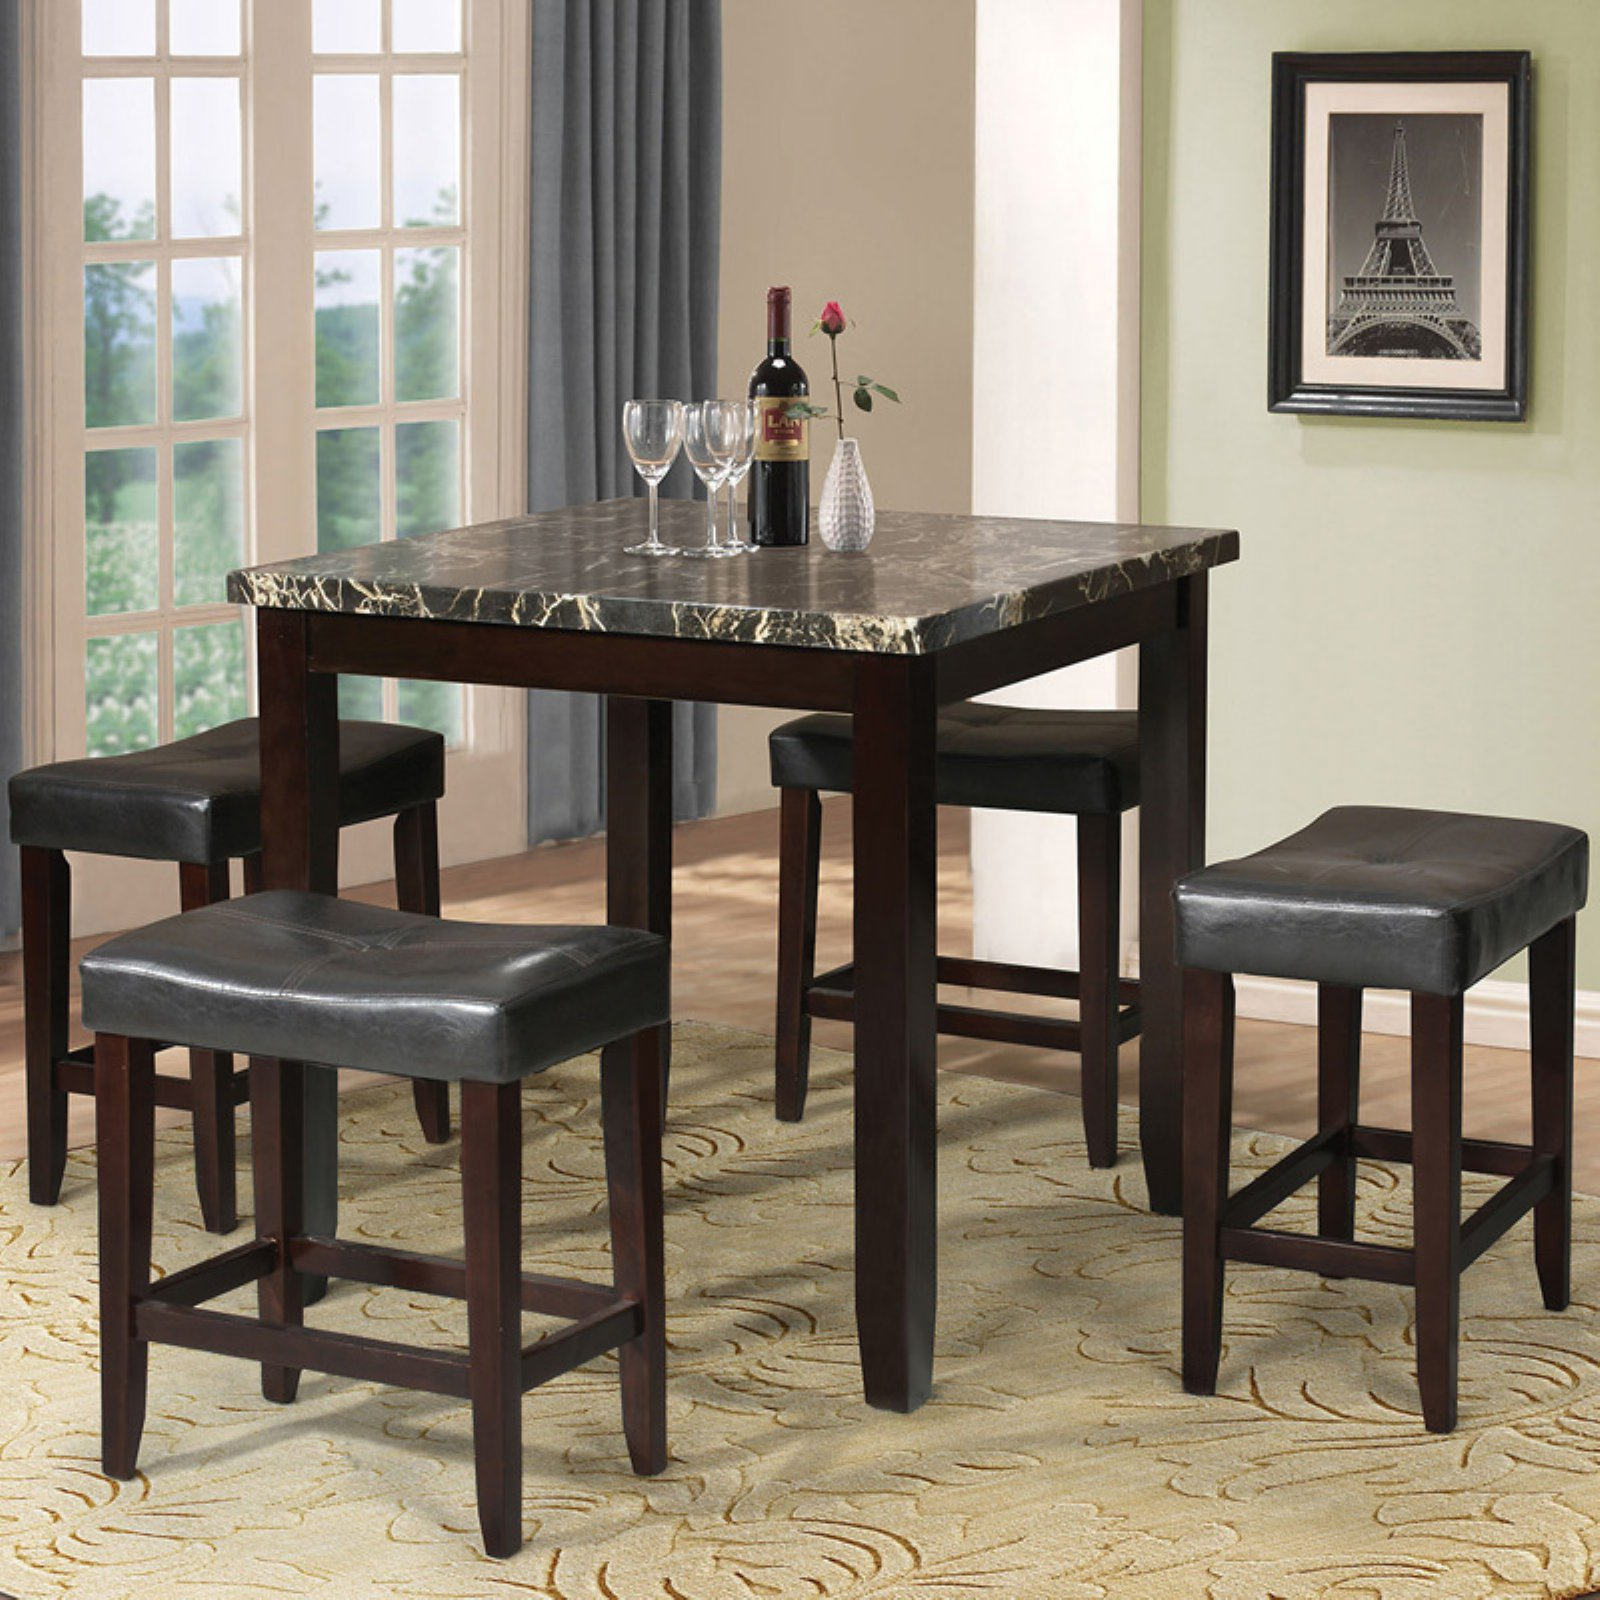 Acme Ainsley 5-Piece Counter-Height Dining Set, Black Faux Marble and Espresso